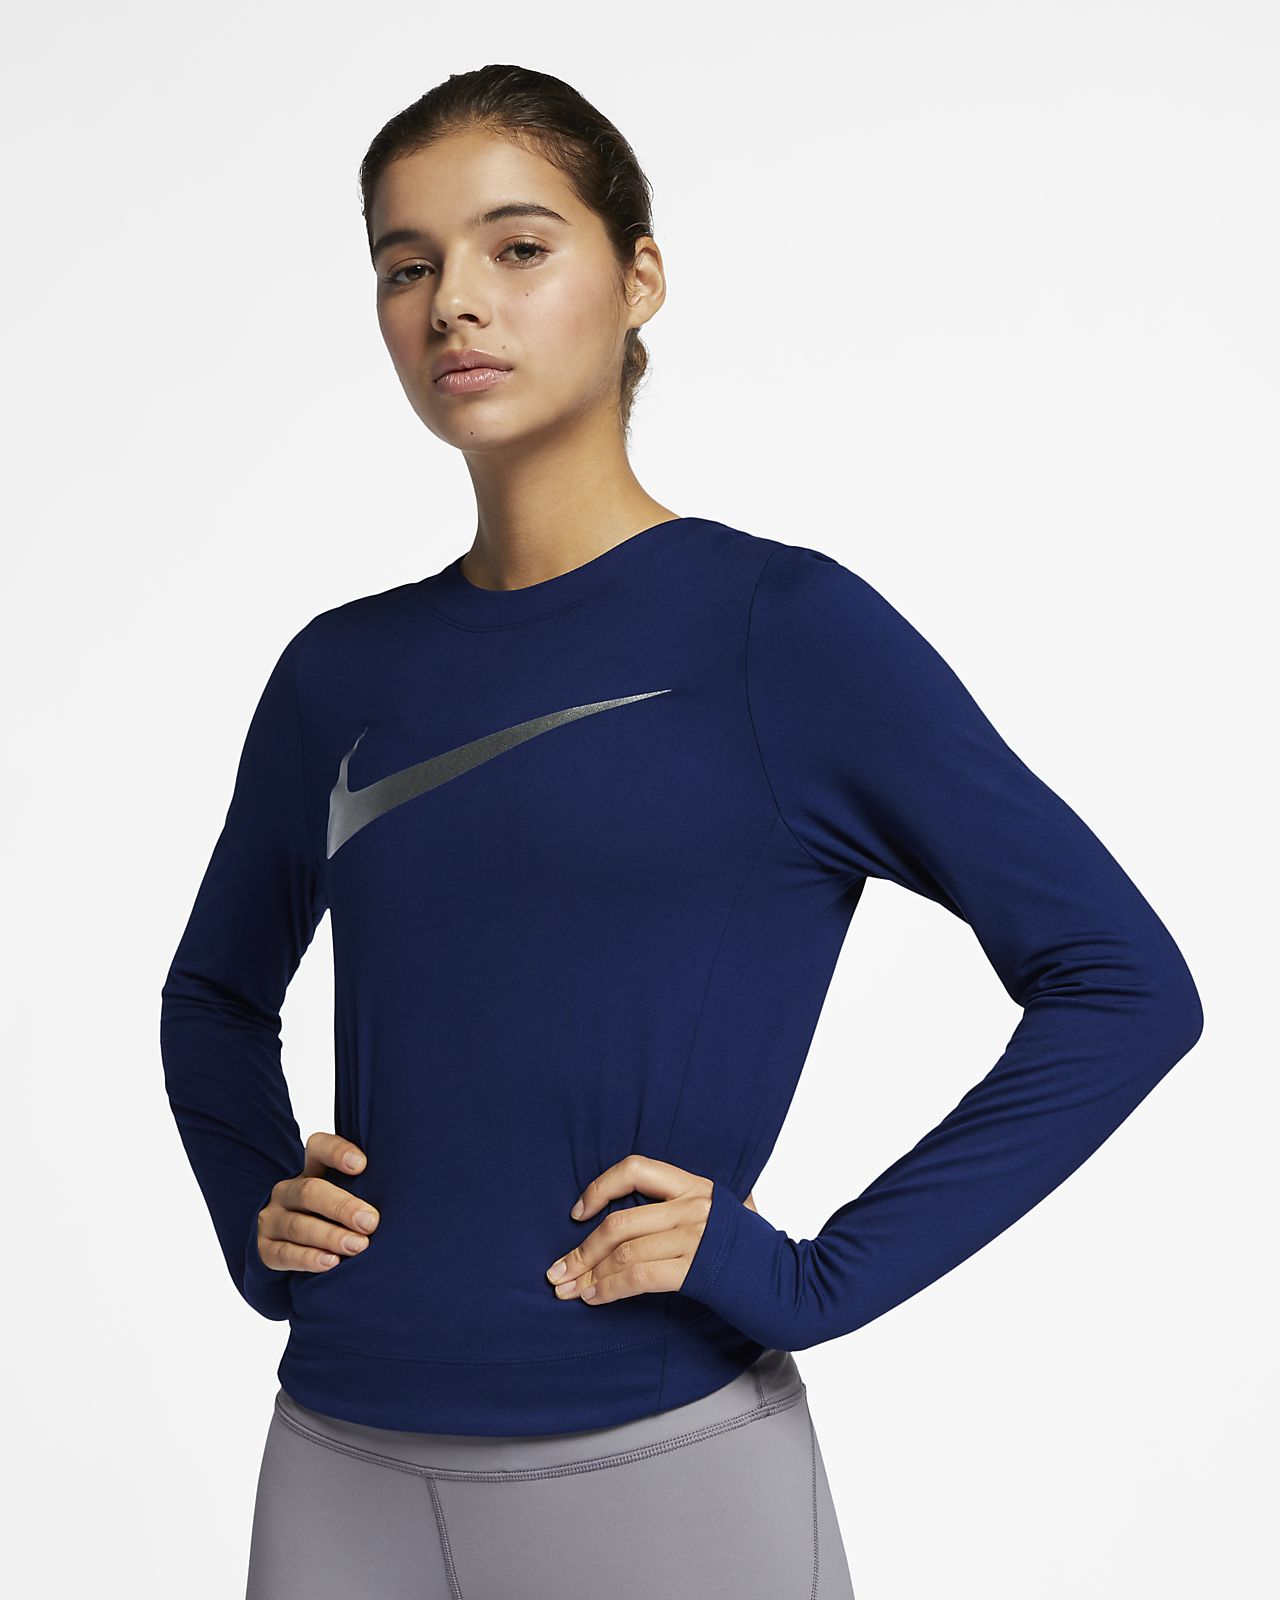 Nike Dri-FIT Women's Running Top